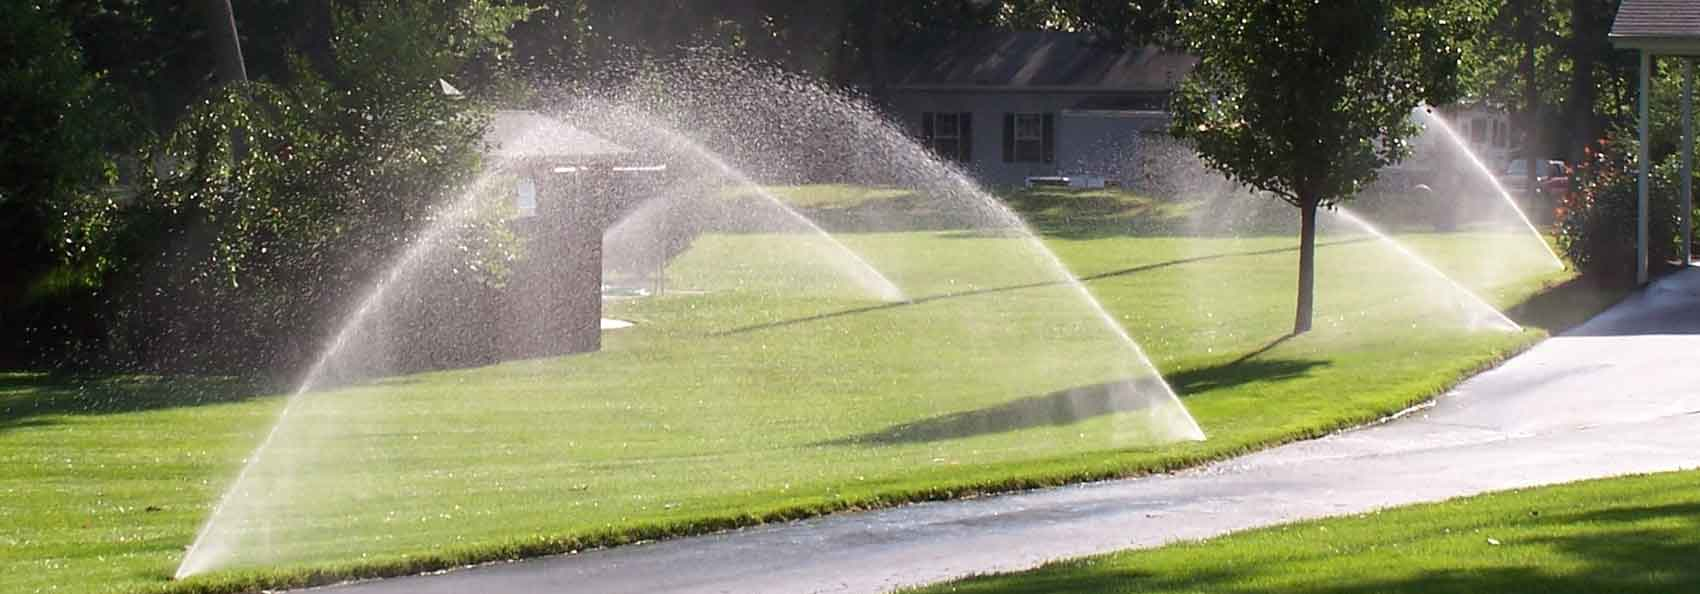 Ecolawn Sprinkler Systems